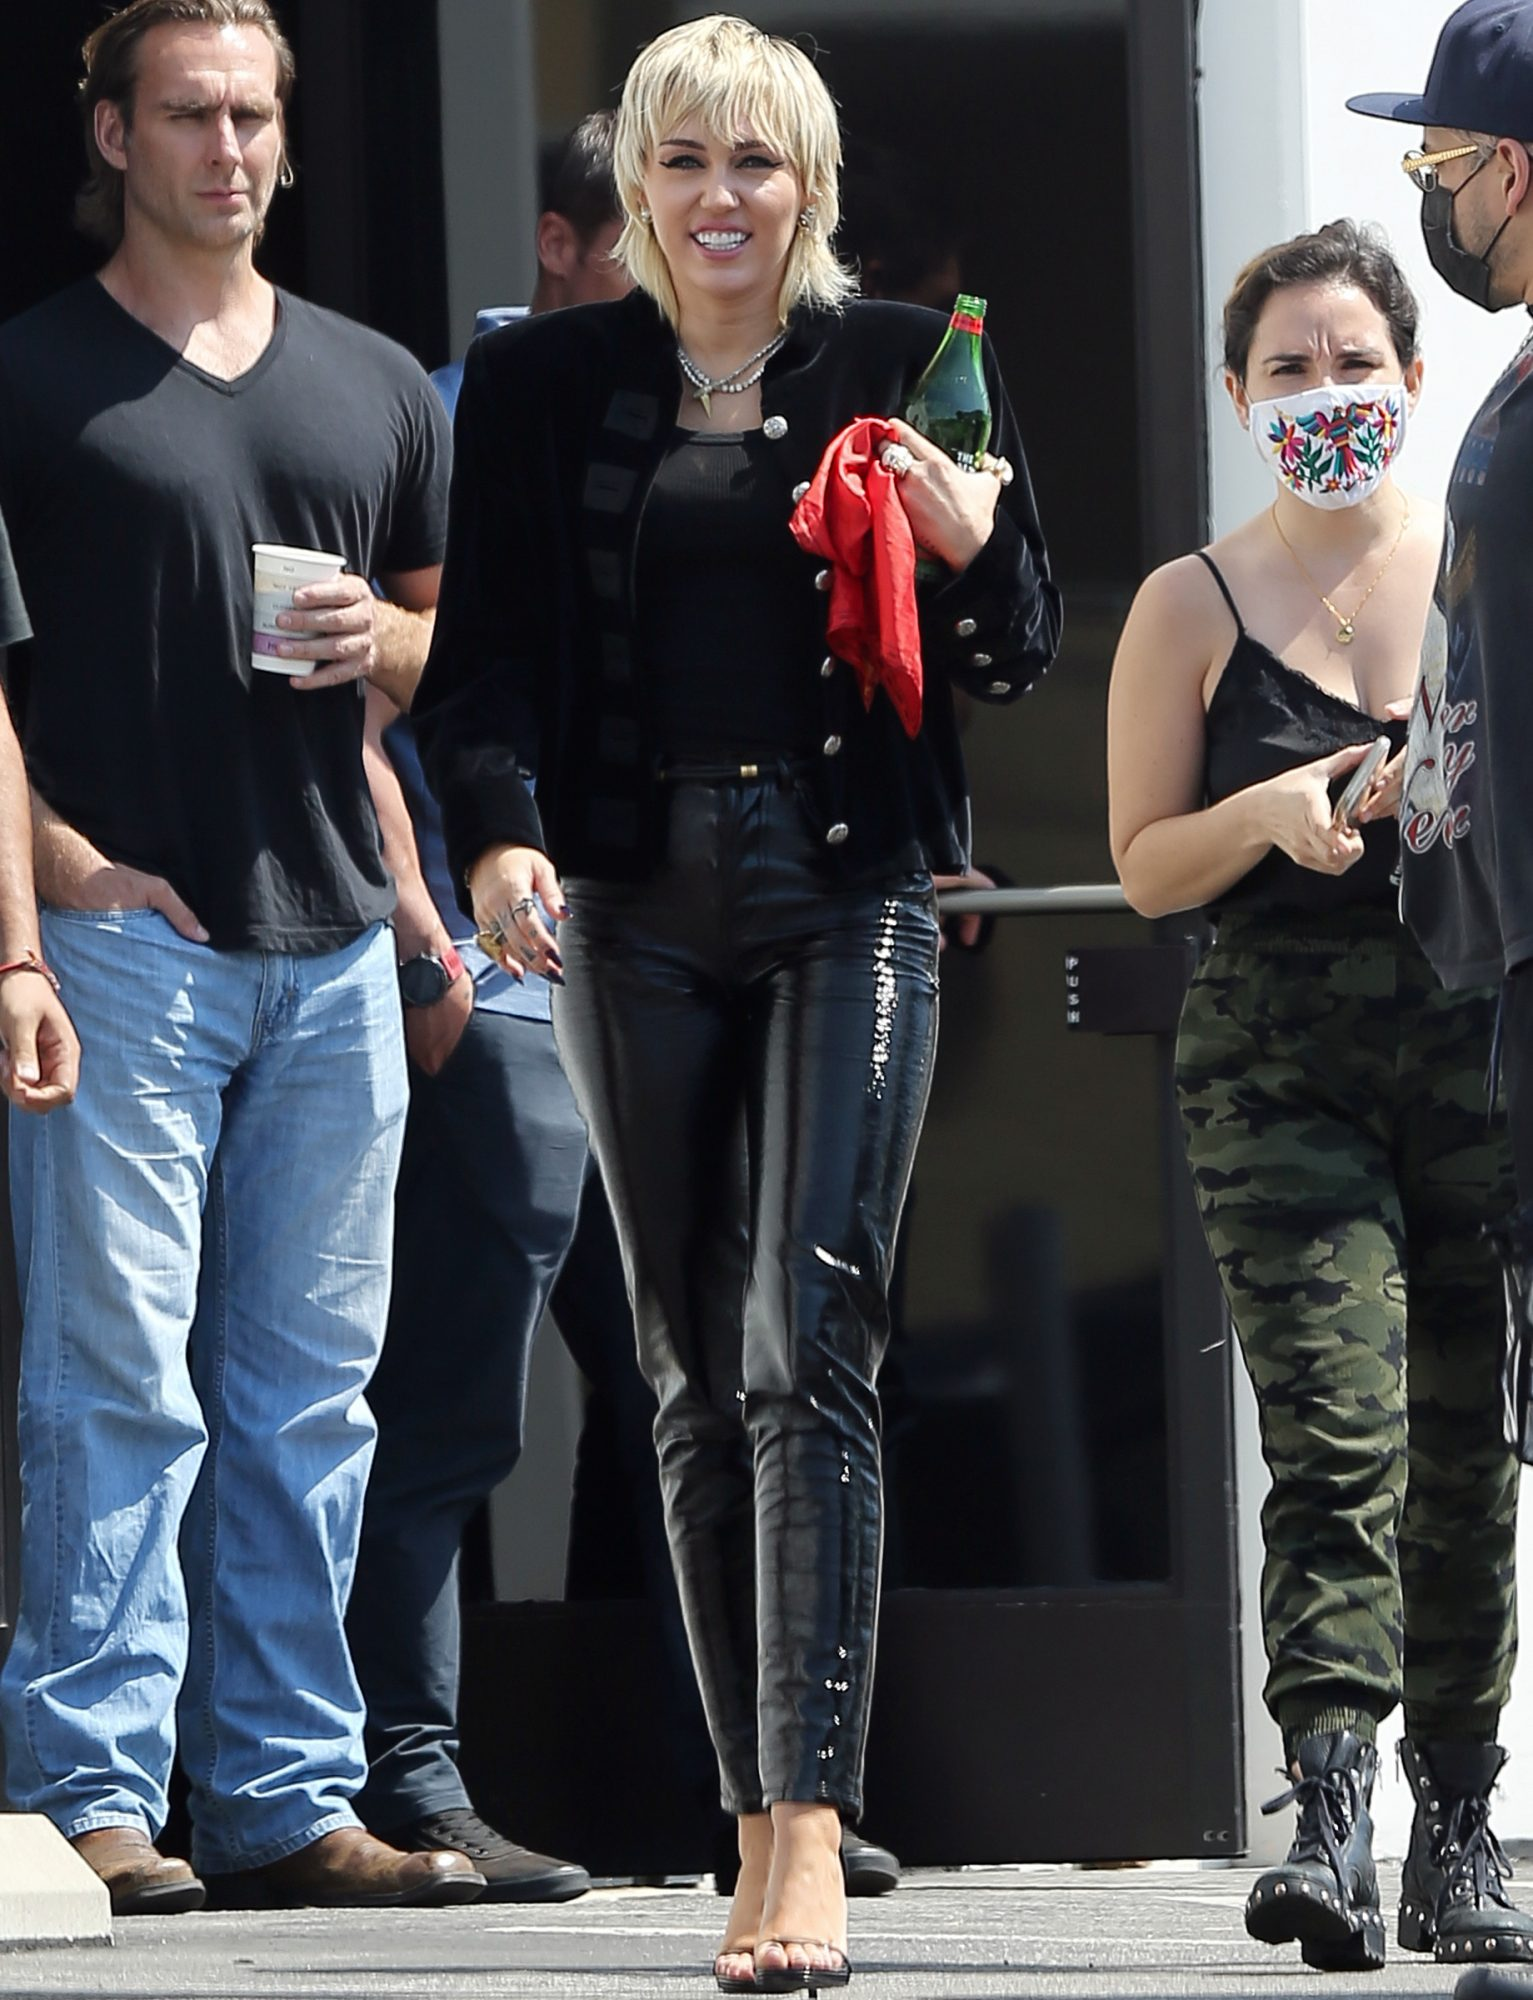 Miley Cyrus Is All Smiles As She Steps Out In Los Angeles Looking Red Hot In Shiny Disco Pants